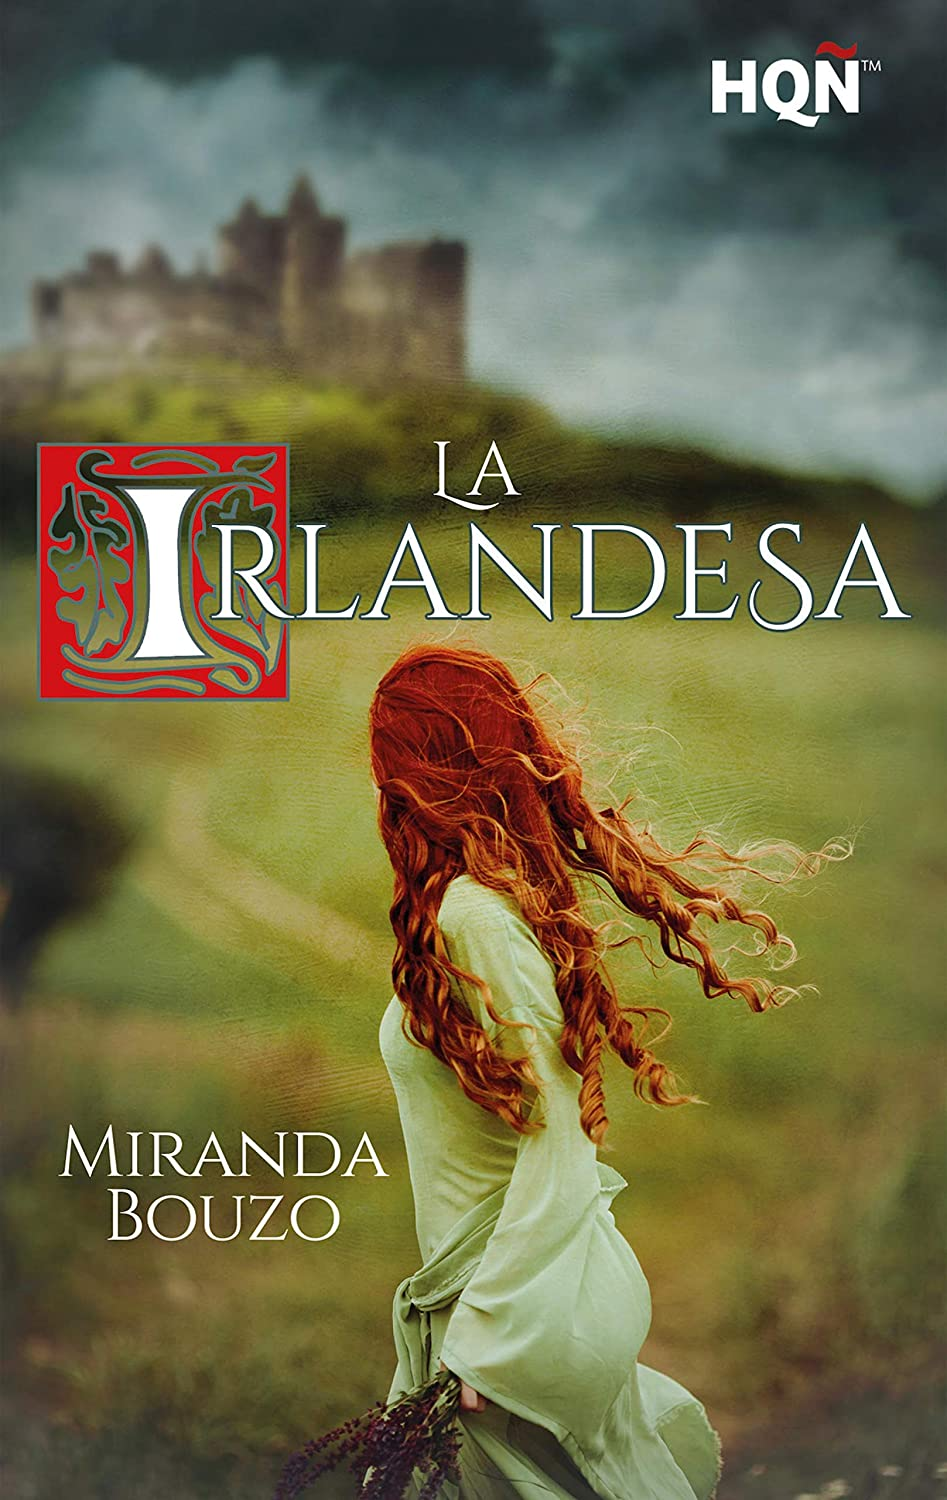 La irlandesa (HQÑ) eBook: Bouzo, Miranda: Amazon.es: Tienda Kindle